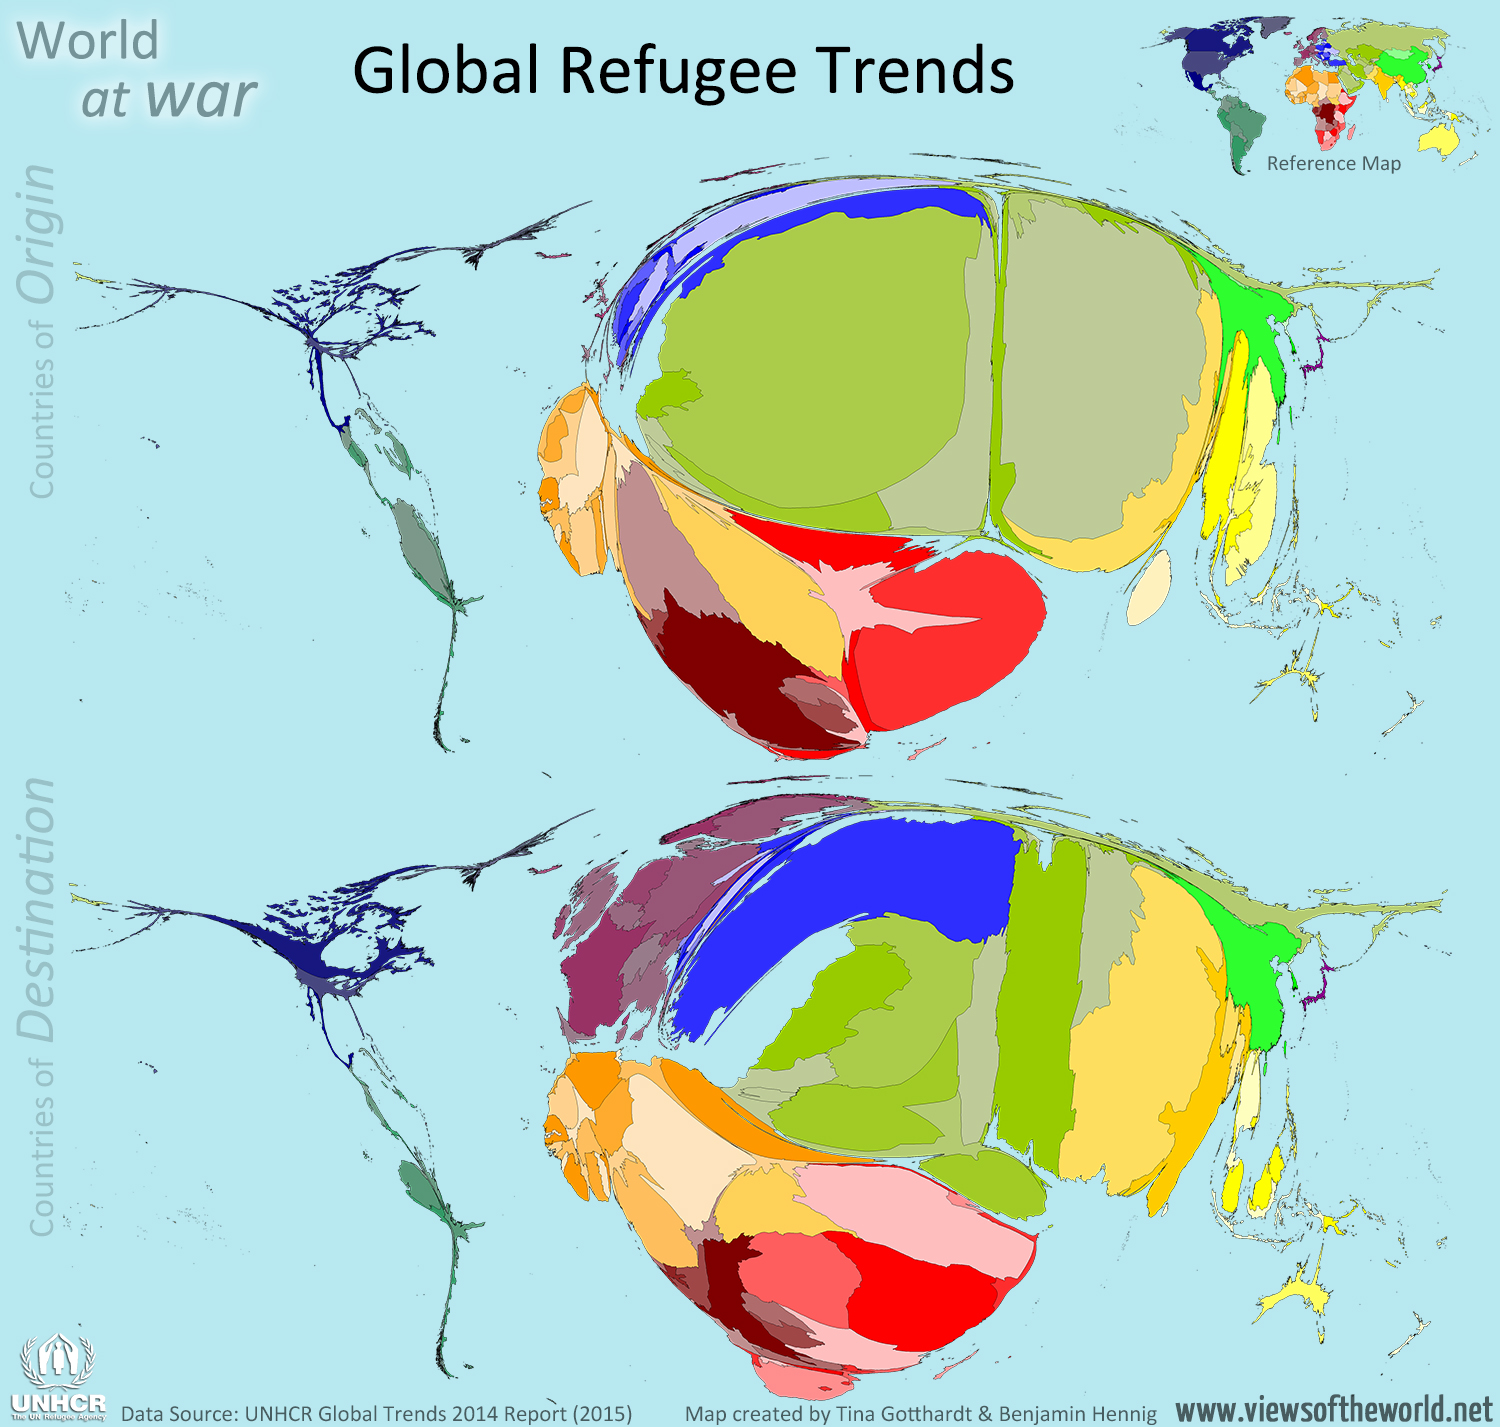 Cartograms / Maps of Refugee Origin and Destination Countries in 2014